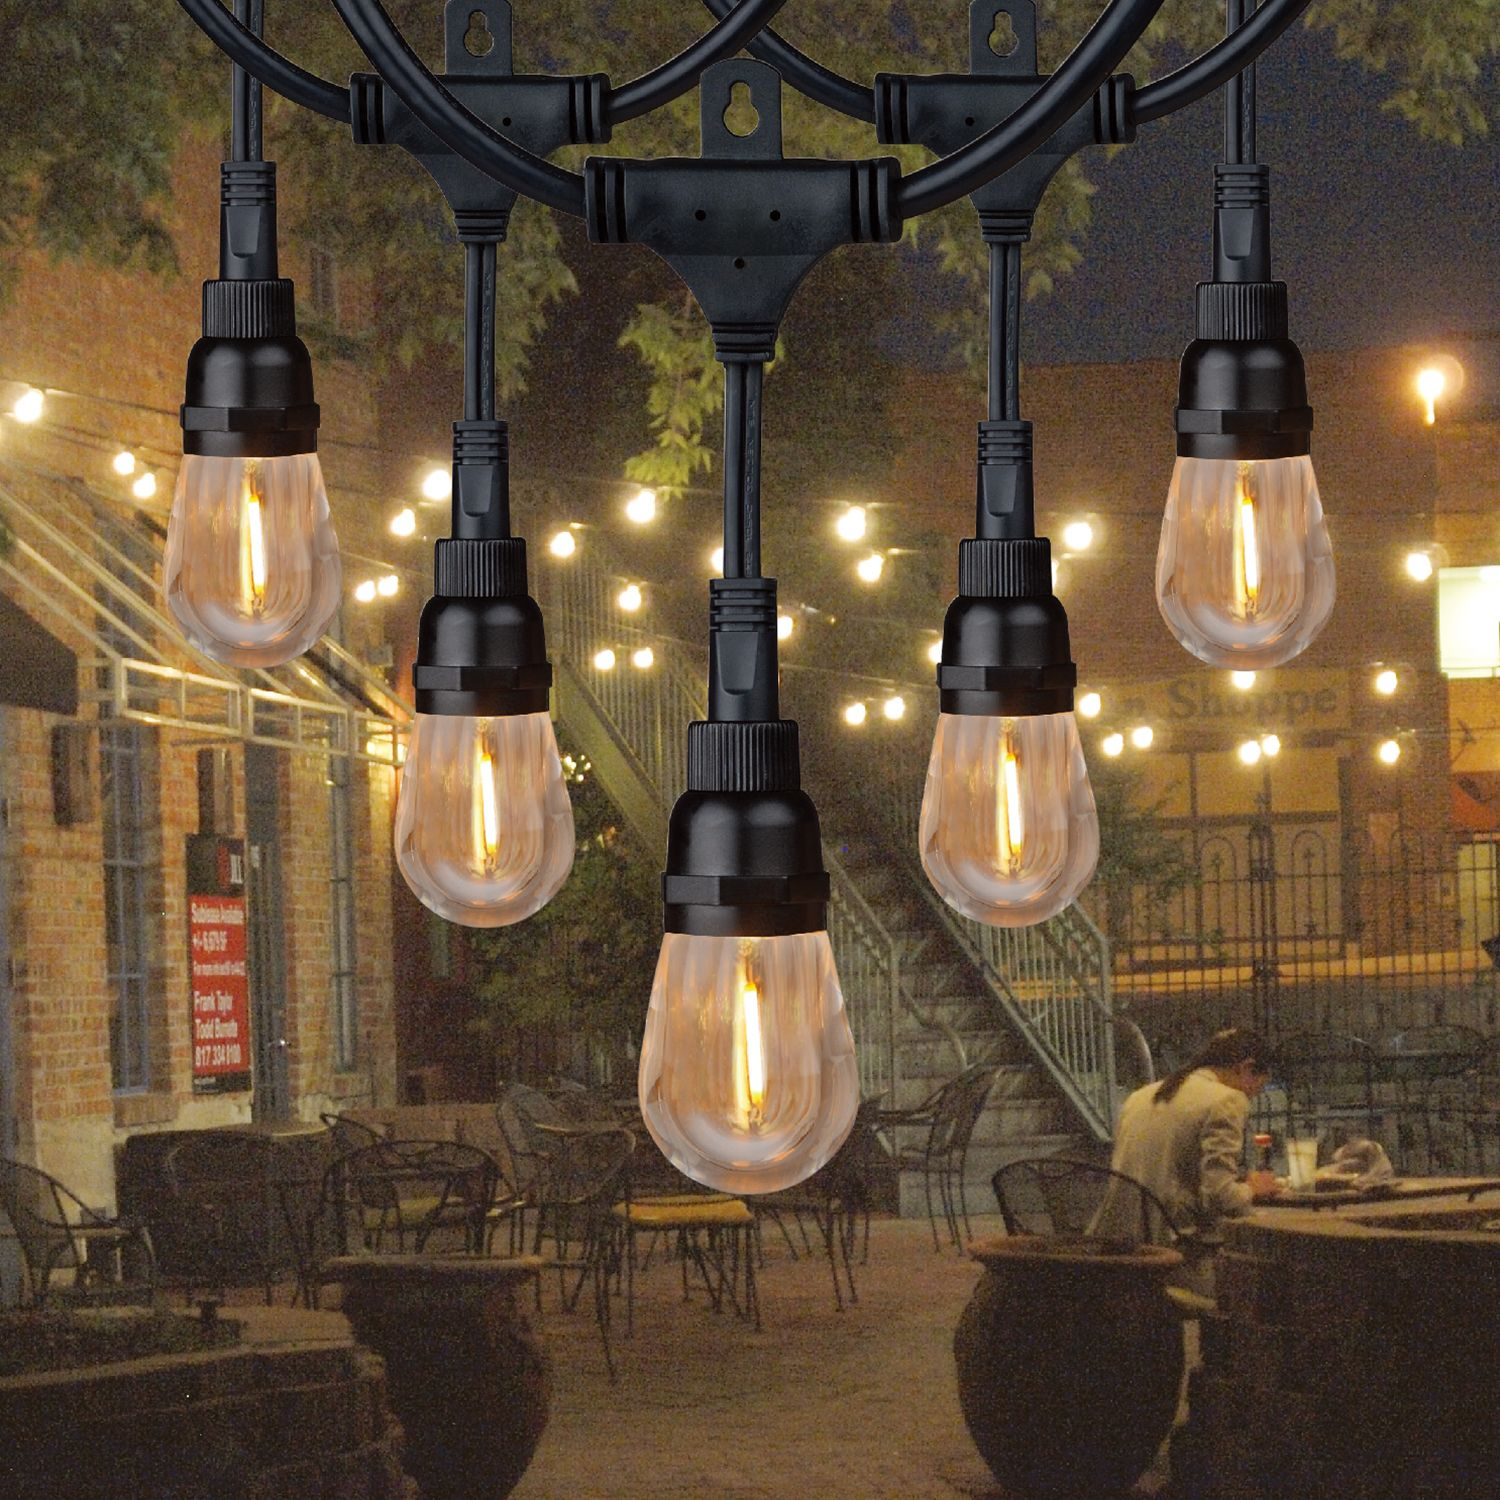 Honeywell 24' Commercial-Grade LED Indoor/Outdoor String